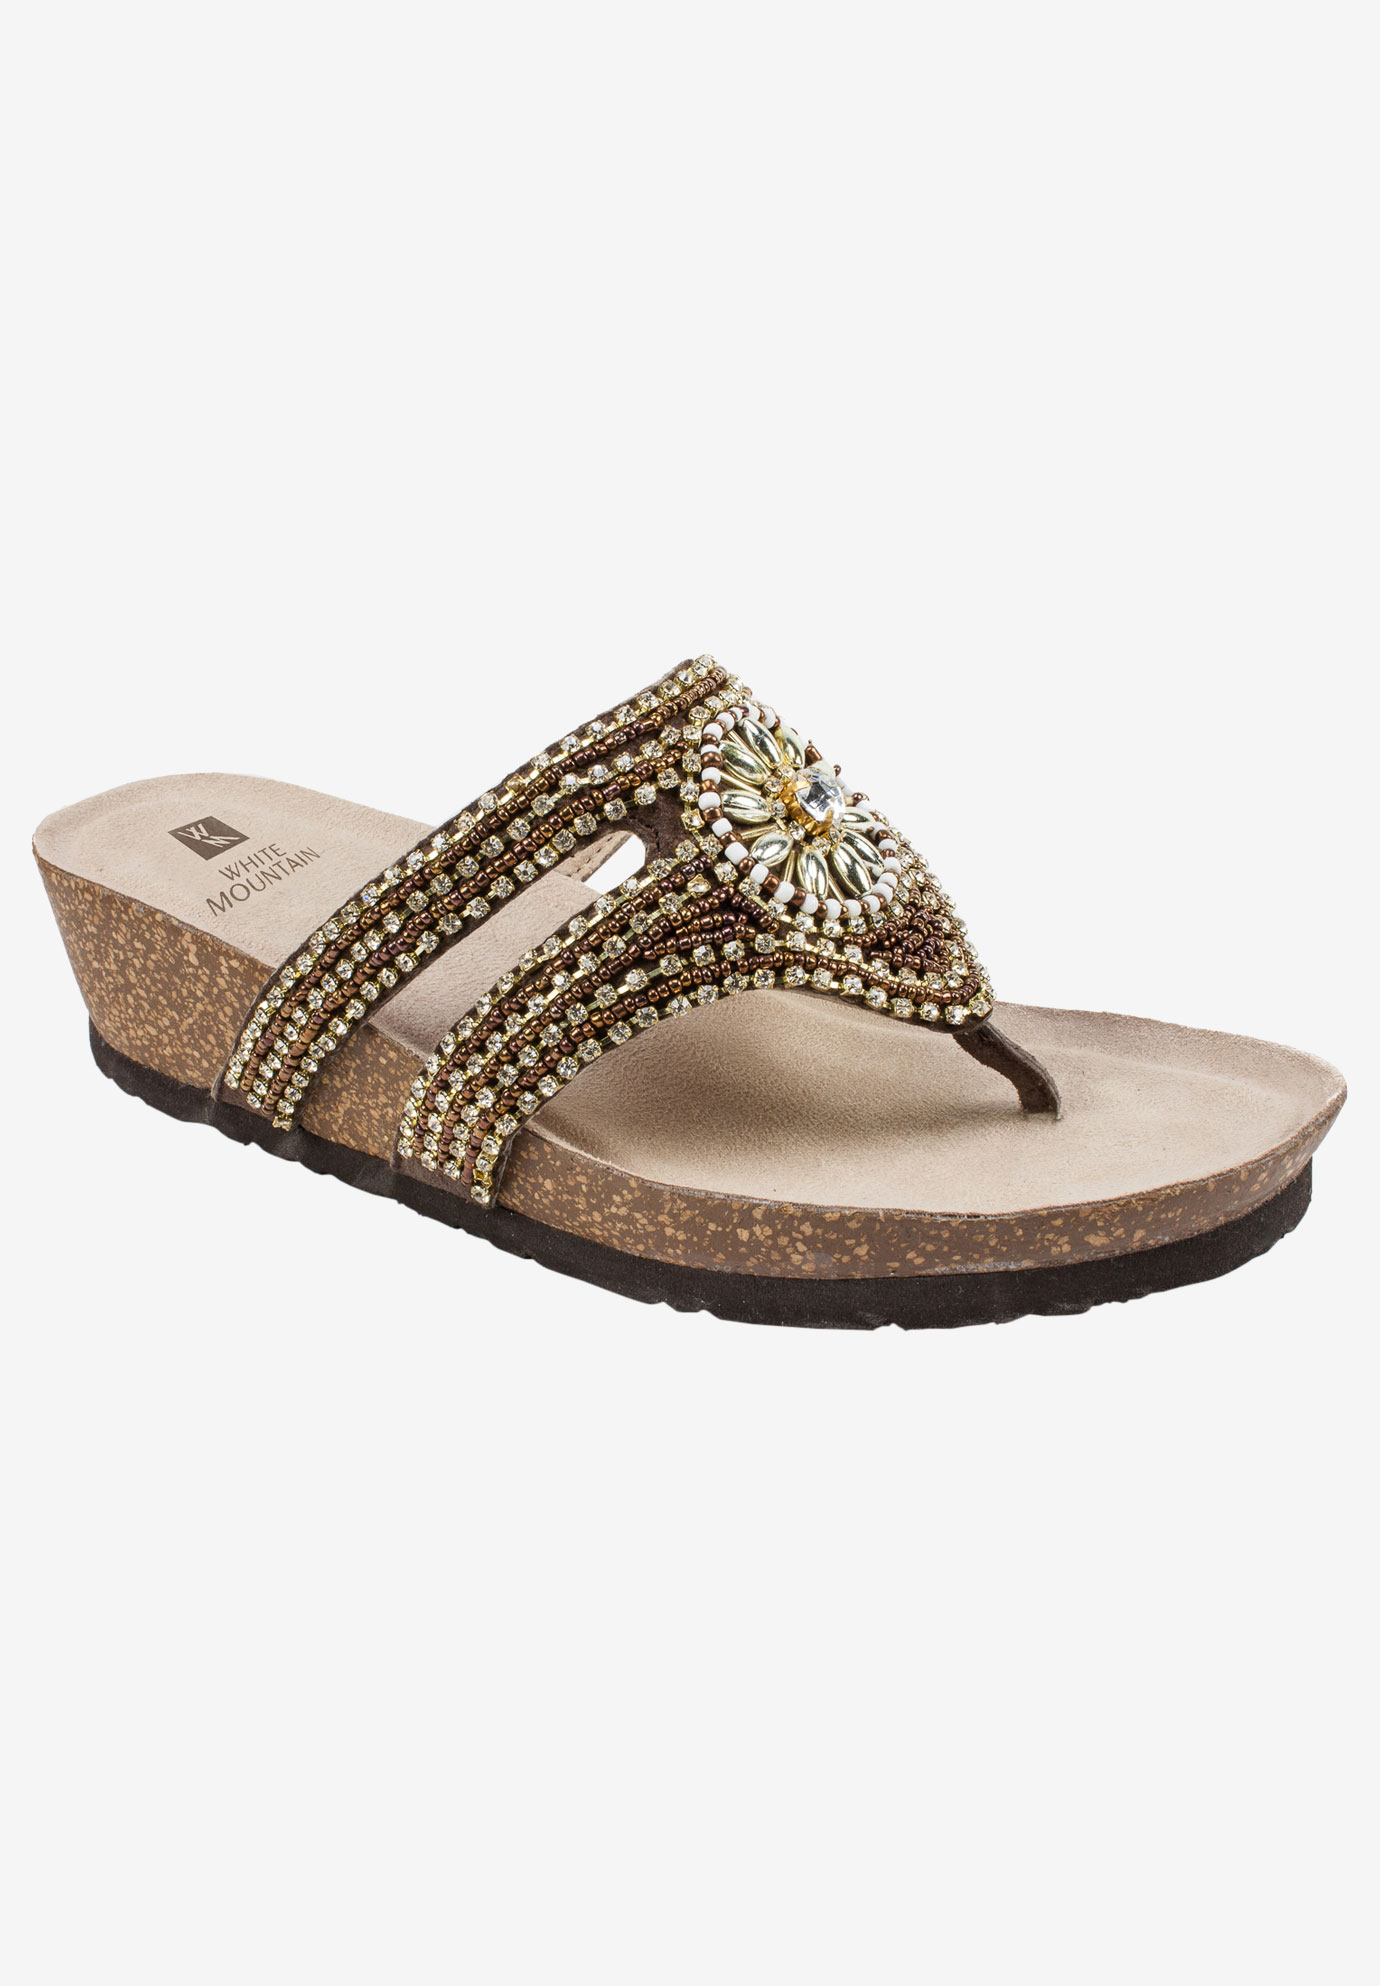 Busy Sandal by White Mountain,